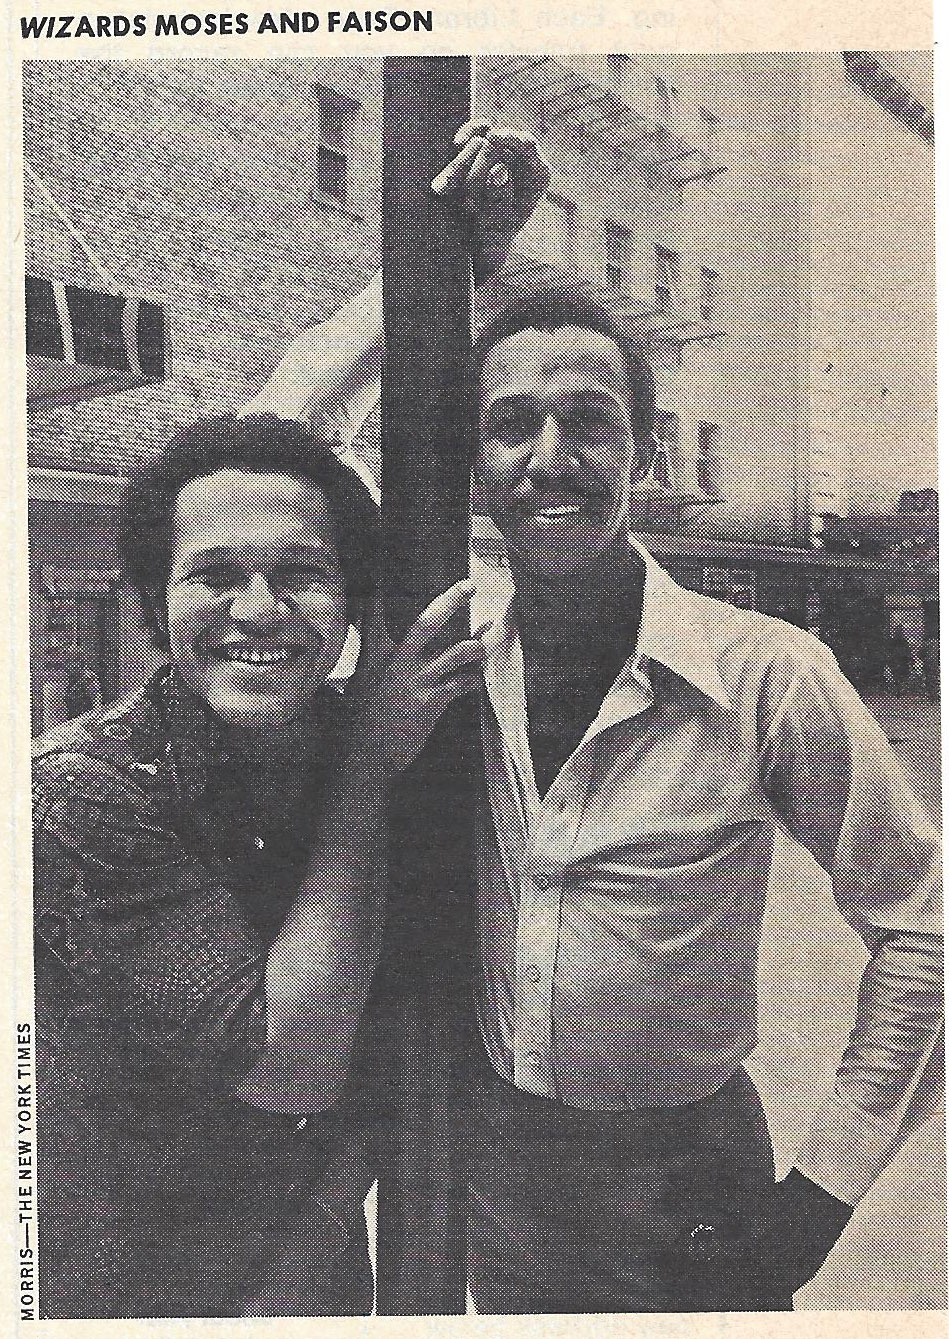 Gilbert Moses and George Faison pose for a newspaper photograph.